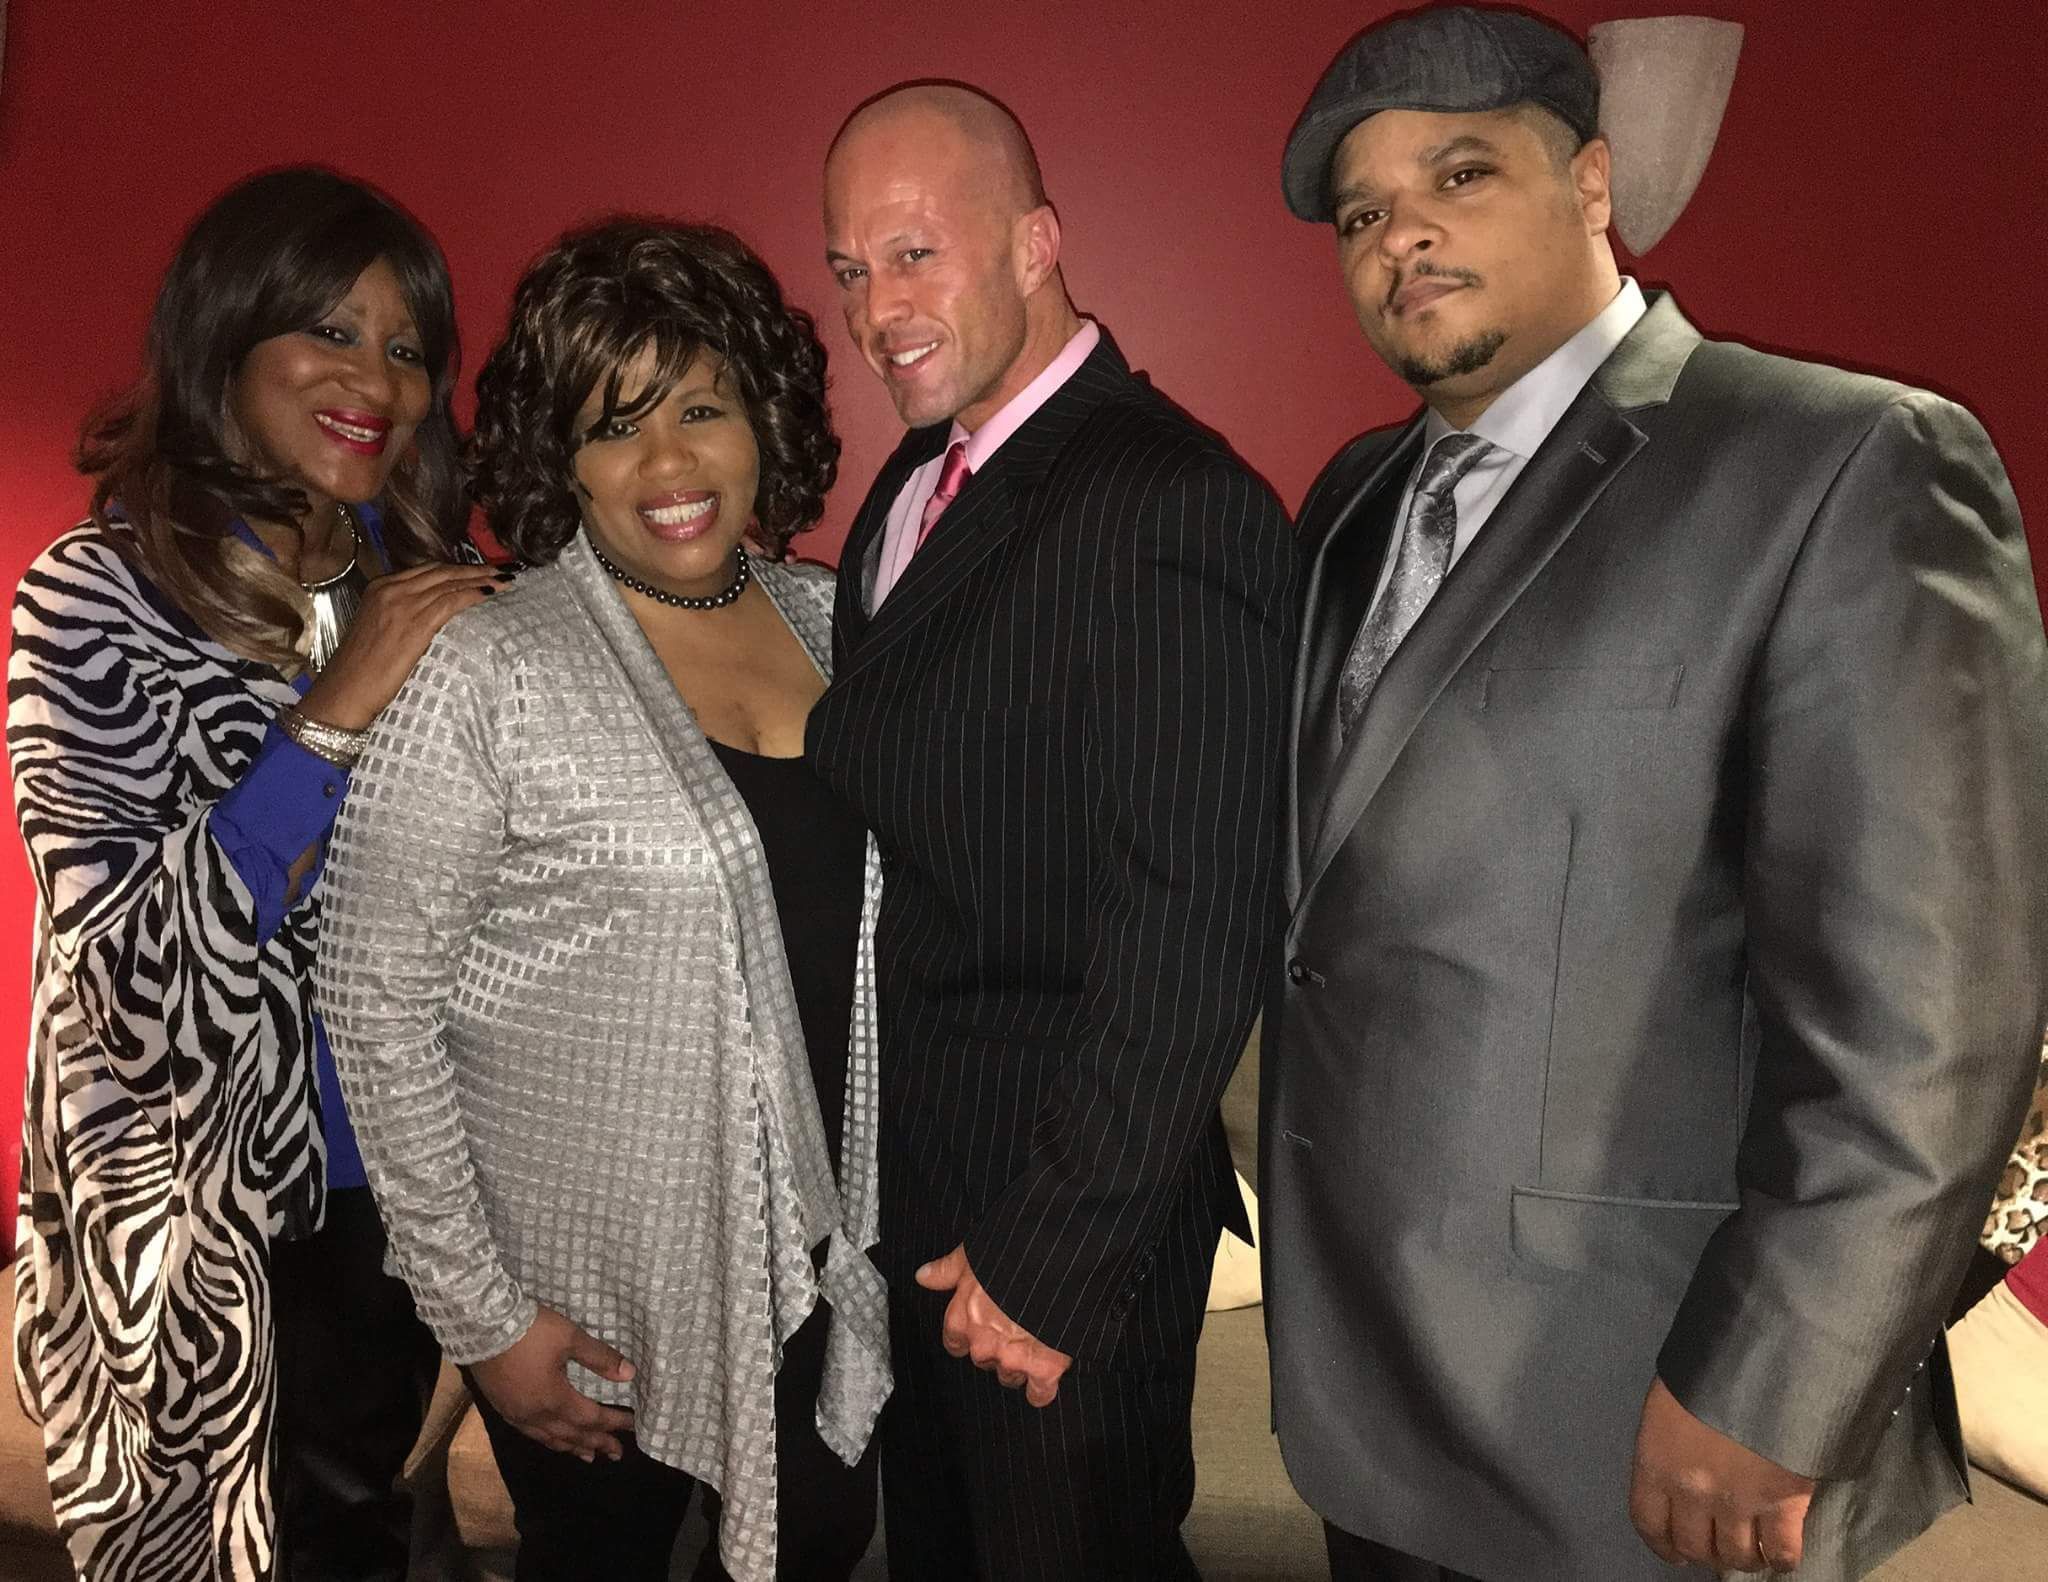 Model Actor John Quinlan Celebrities in The Basement TV @ Karen Waller-Martin Jillian Bullock & Lamont Fountain #JohnQuinlan #JillianBullock #ASenseOfPurpose #Movie #TamaraWoods #KarenWallerMartin #Lamont Fountain